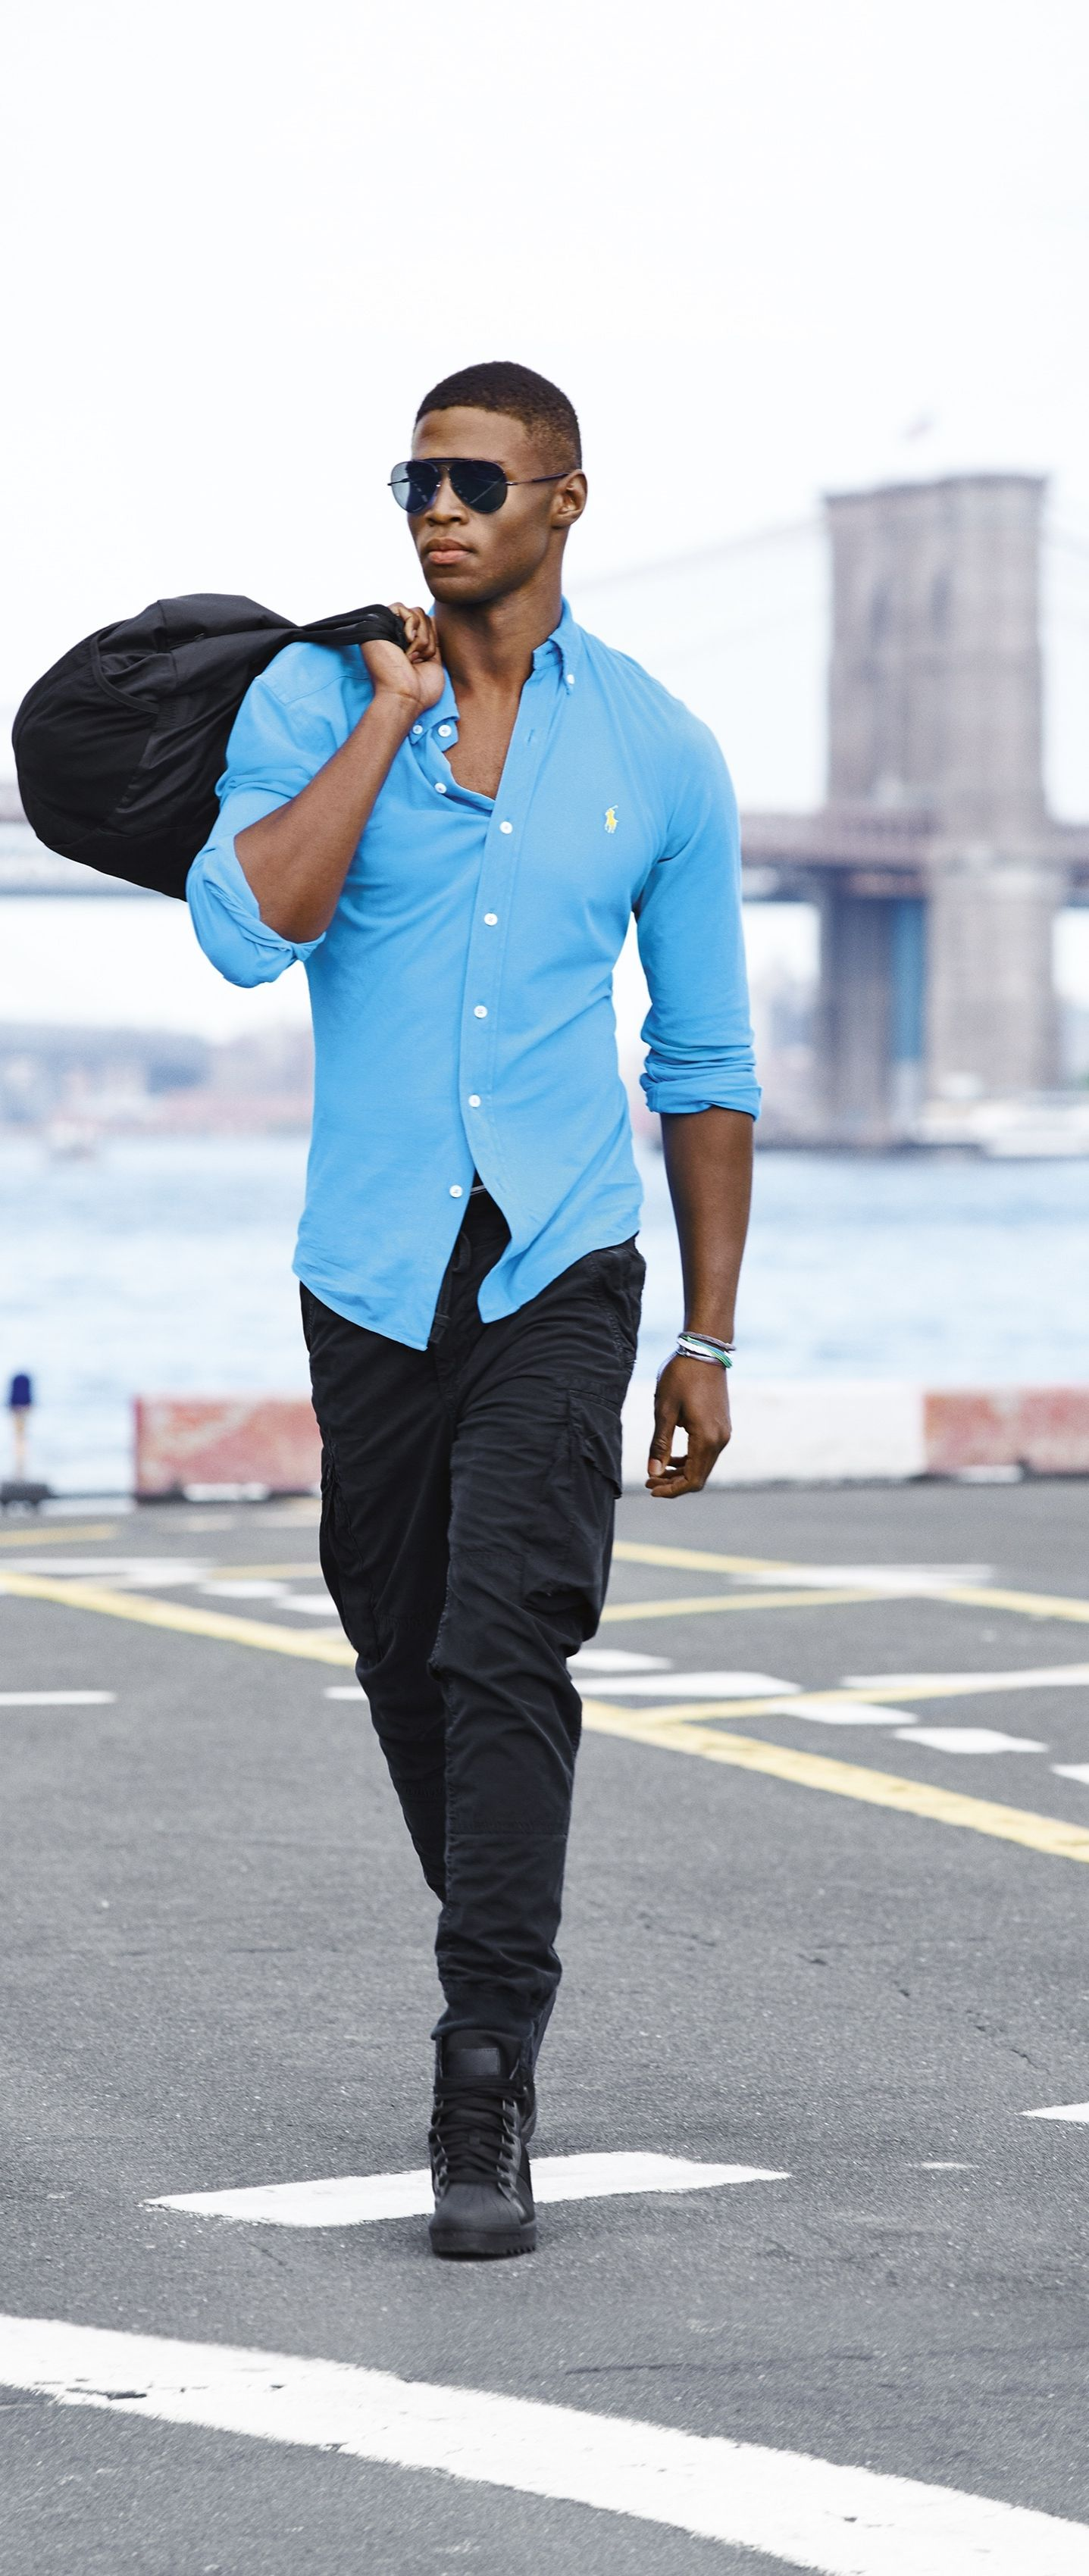 New arrivals from Polo Ralph Lauren: the quintessential blue sport shirt gets a luxe update